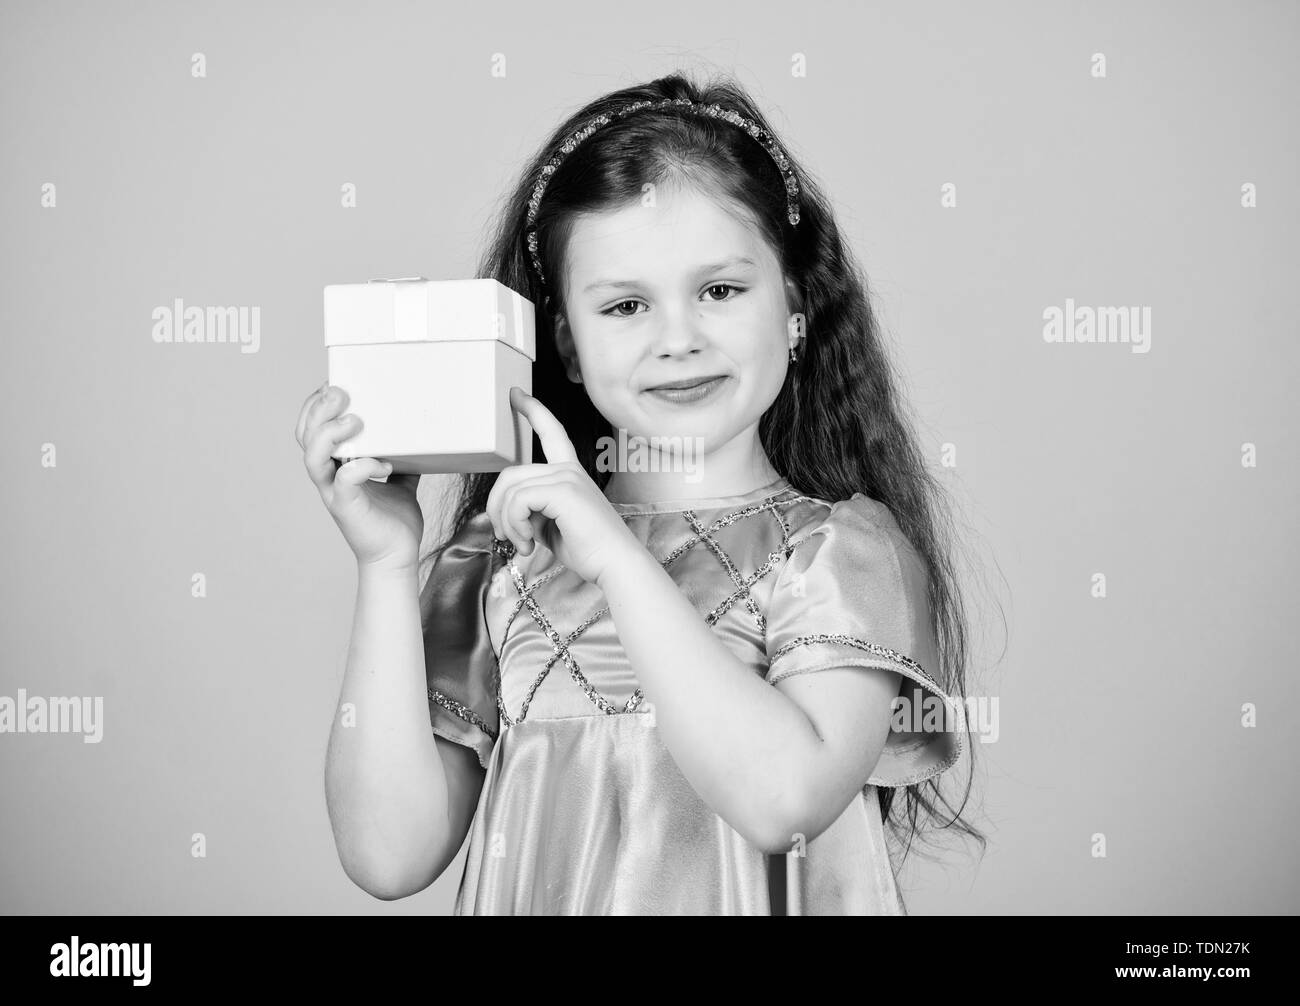 happy birthday holiday. Beauty. black Friday discount. big sale. Small girl fashion. cyber Monday. Present and gift buy. happy shopping girl with box. Shopping happiness. - Stock Image